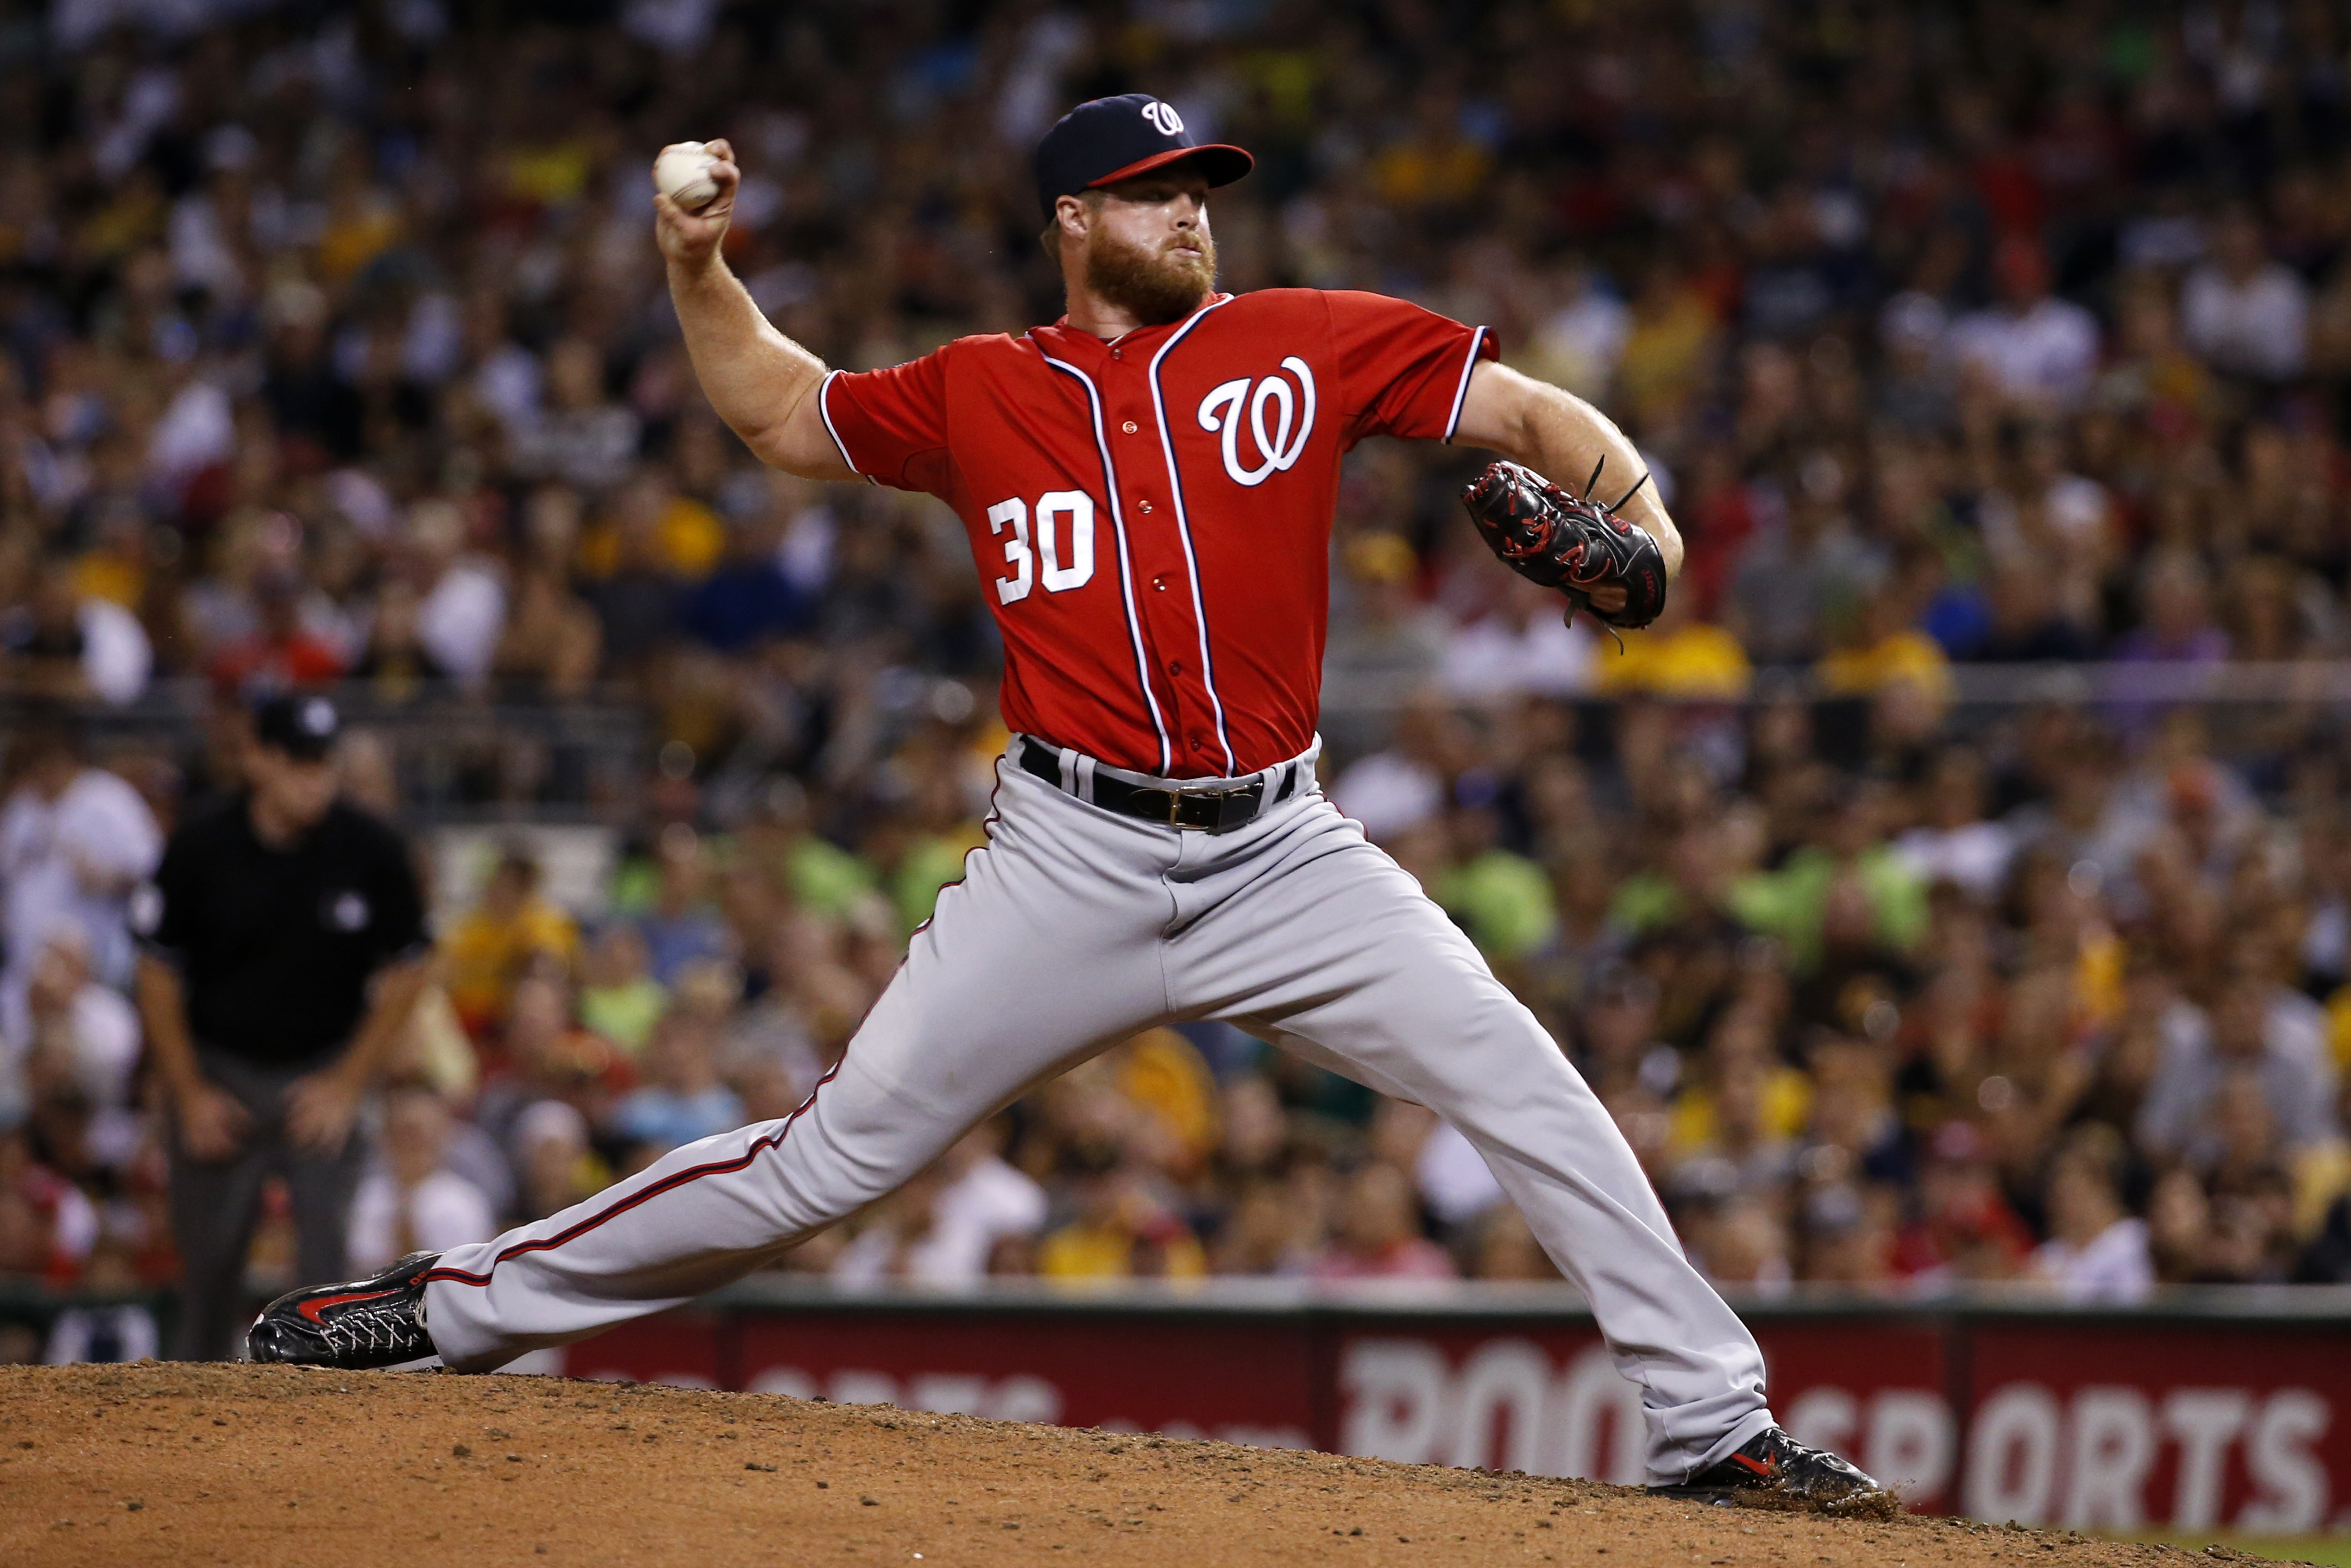 Washington Nationals relief pitcher Aaron Barrett (30) delivers during a baseball game against the Pittsburgh Pirates in Pittsburgh, Saturday, July 25, 2015. (AP Photo/Gene J. Puskar)